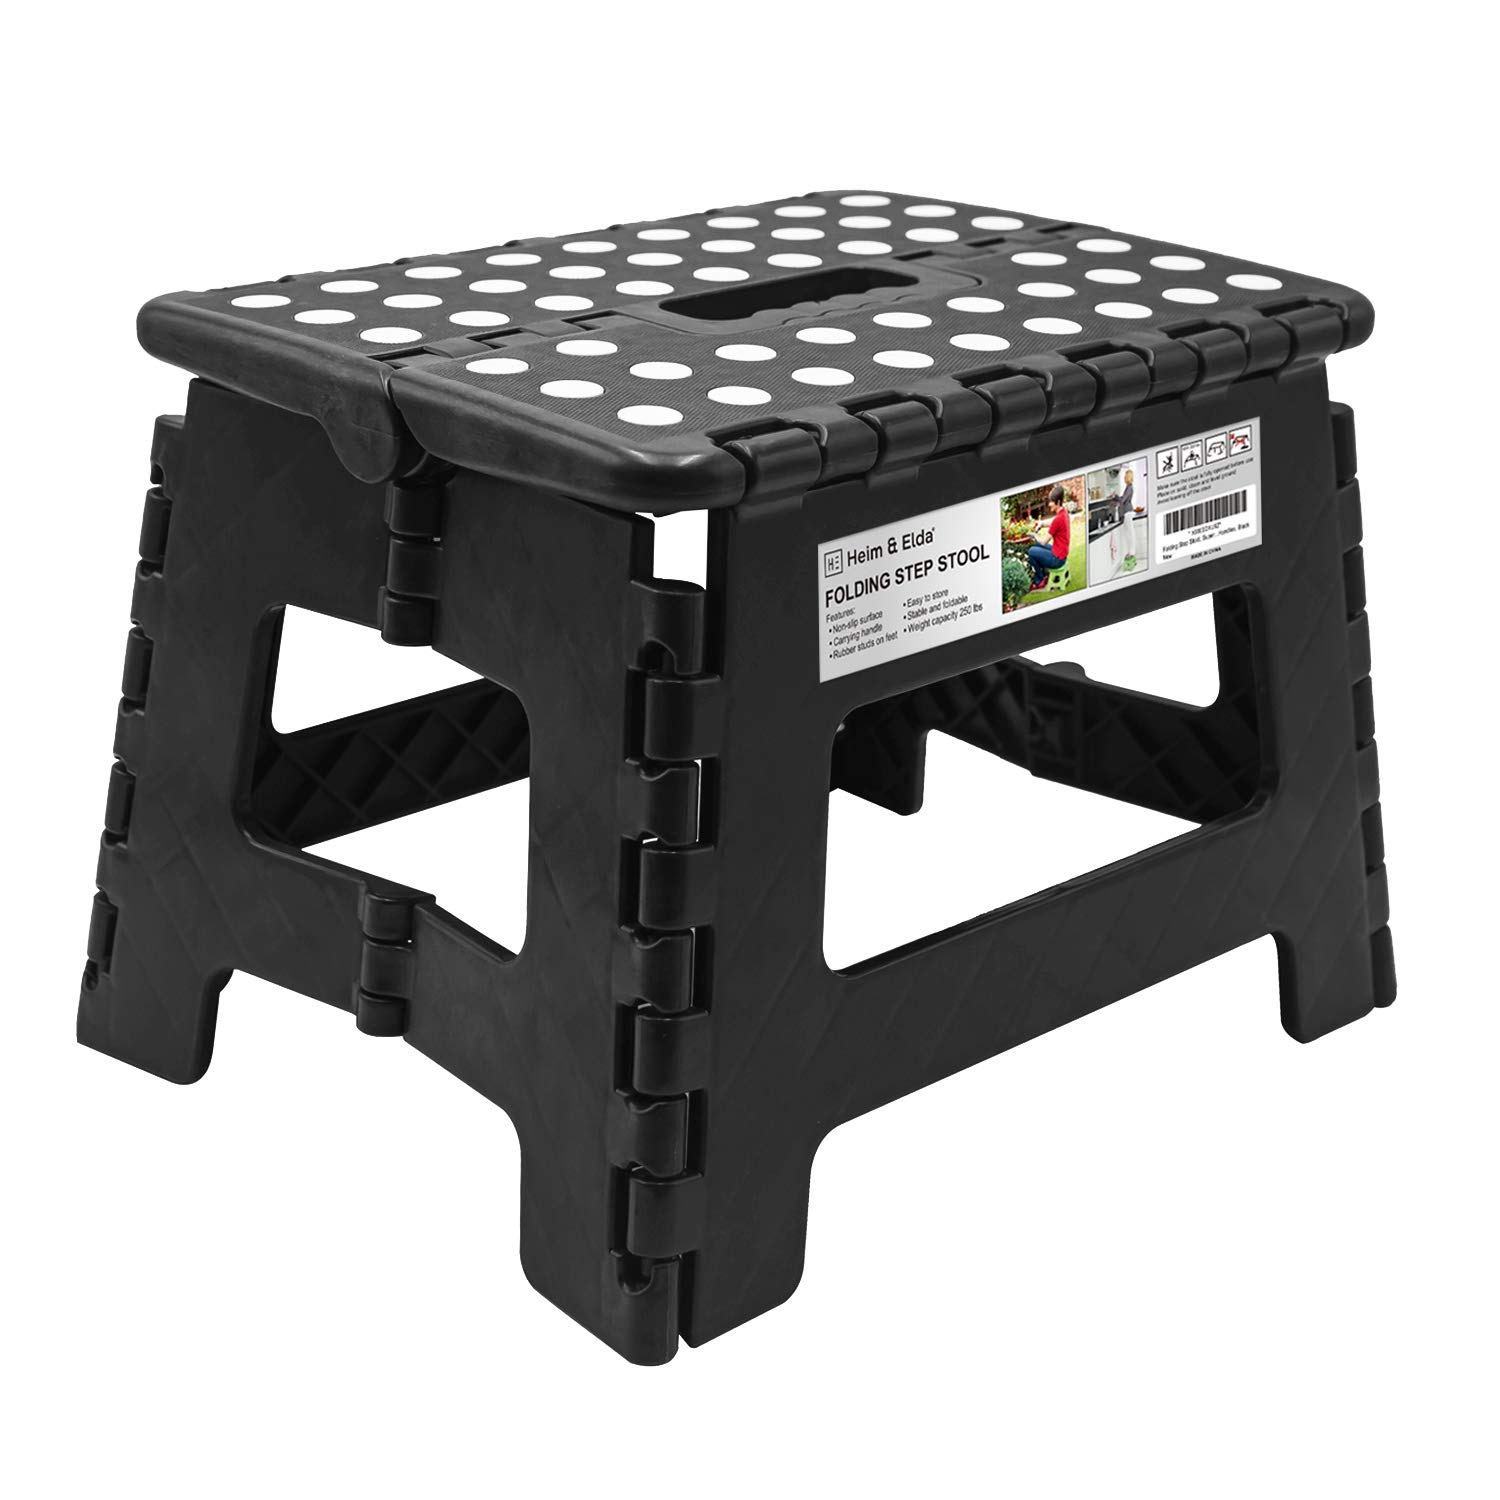 Folding Step Stool, Super Strong Plastic 9 inch Step Stool for Kids and Adults with Handles, Black Heim & Elda